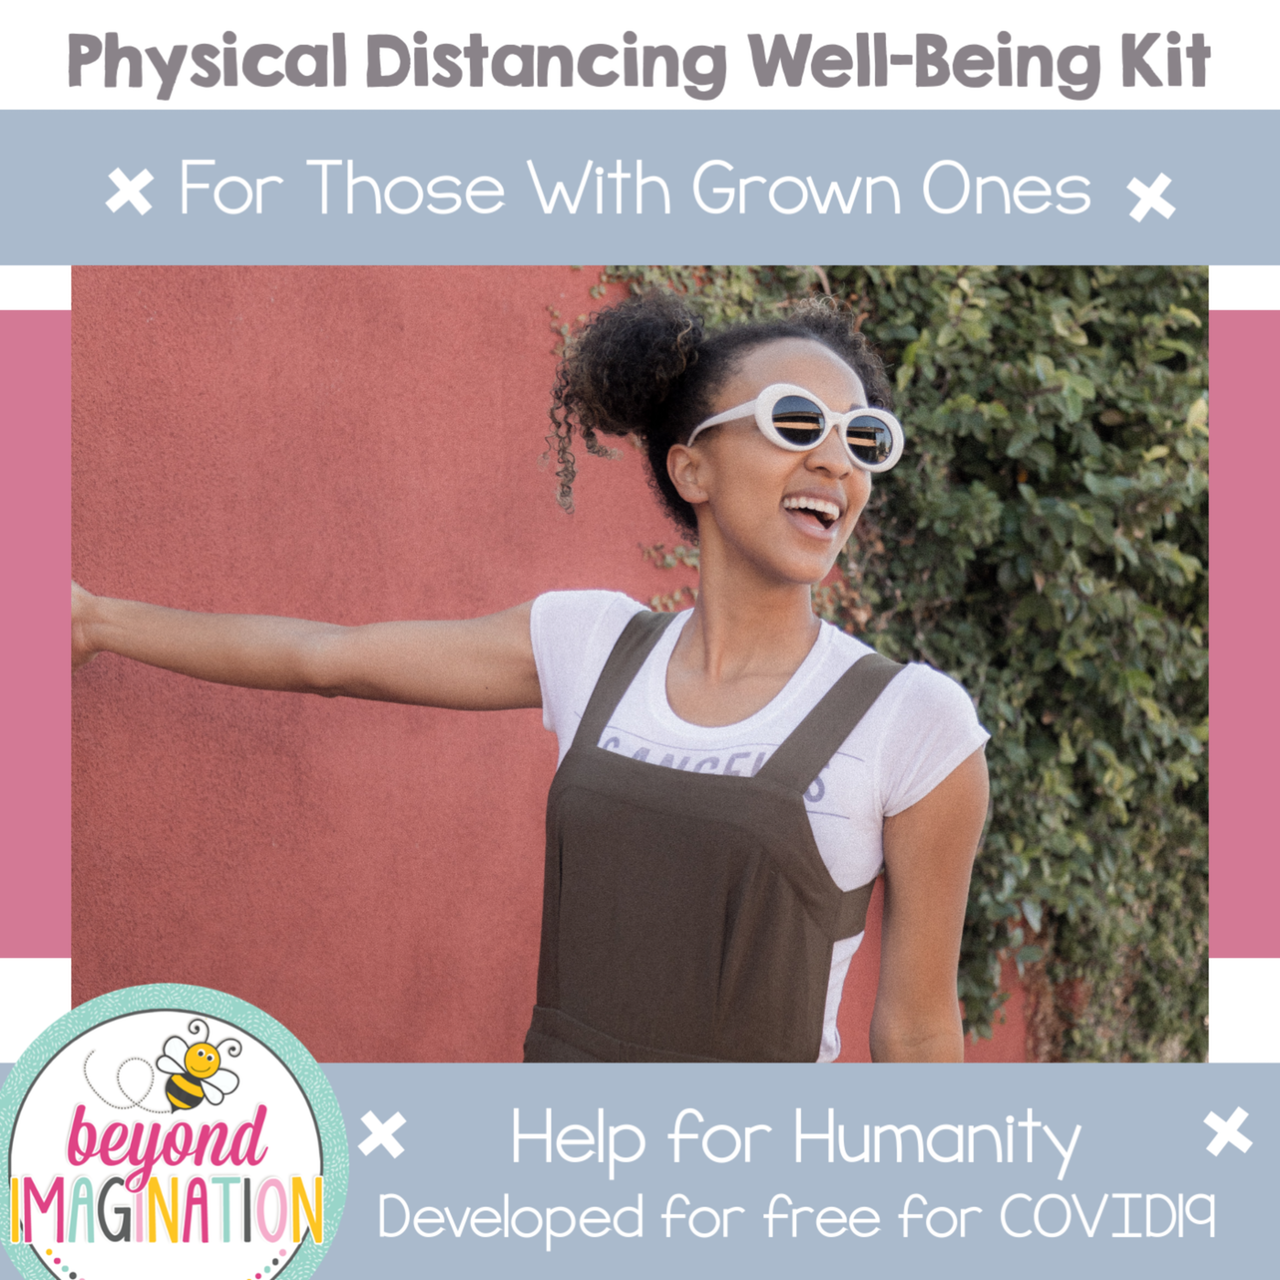 Grown Ones Physical Distancing Well-Being Kit Help for Humanity COVID-19